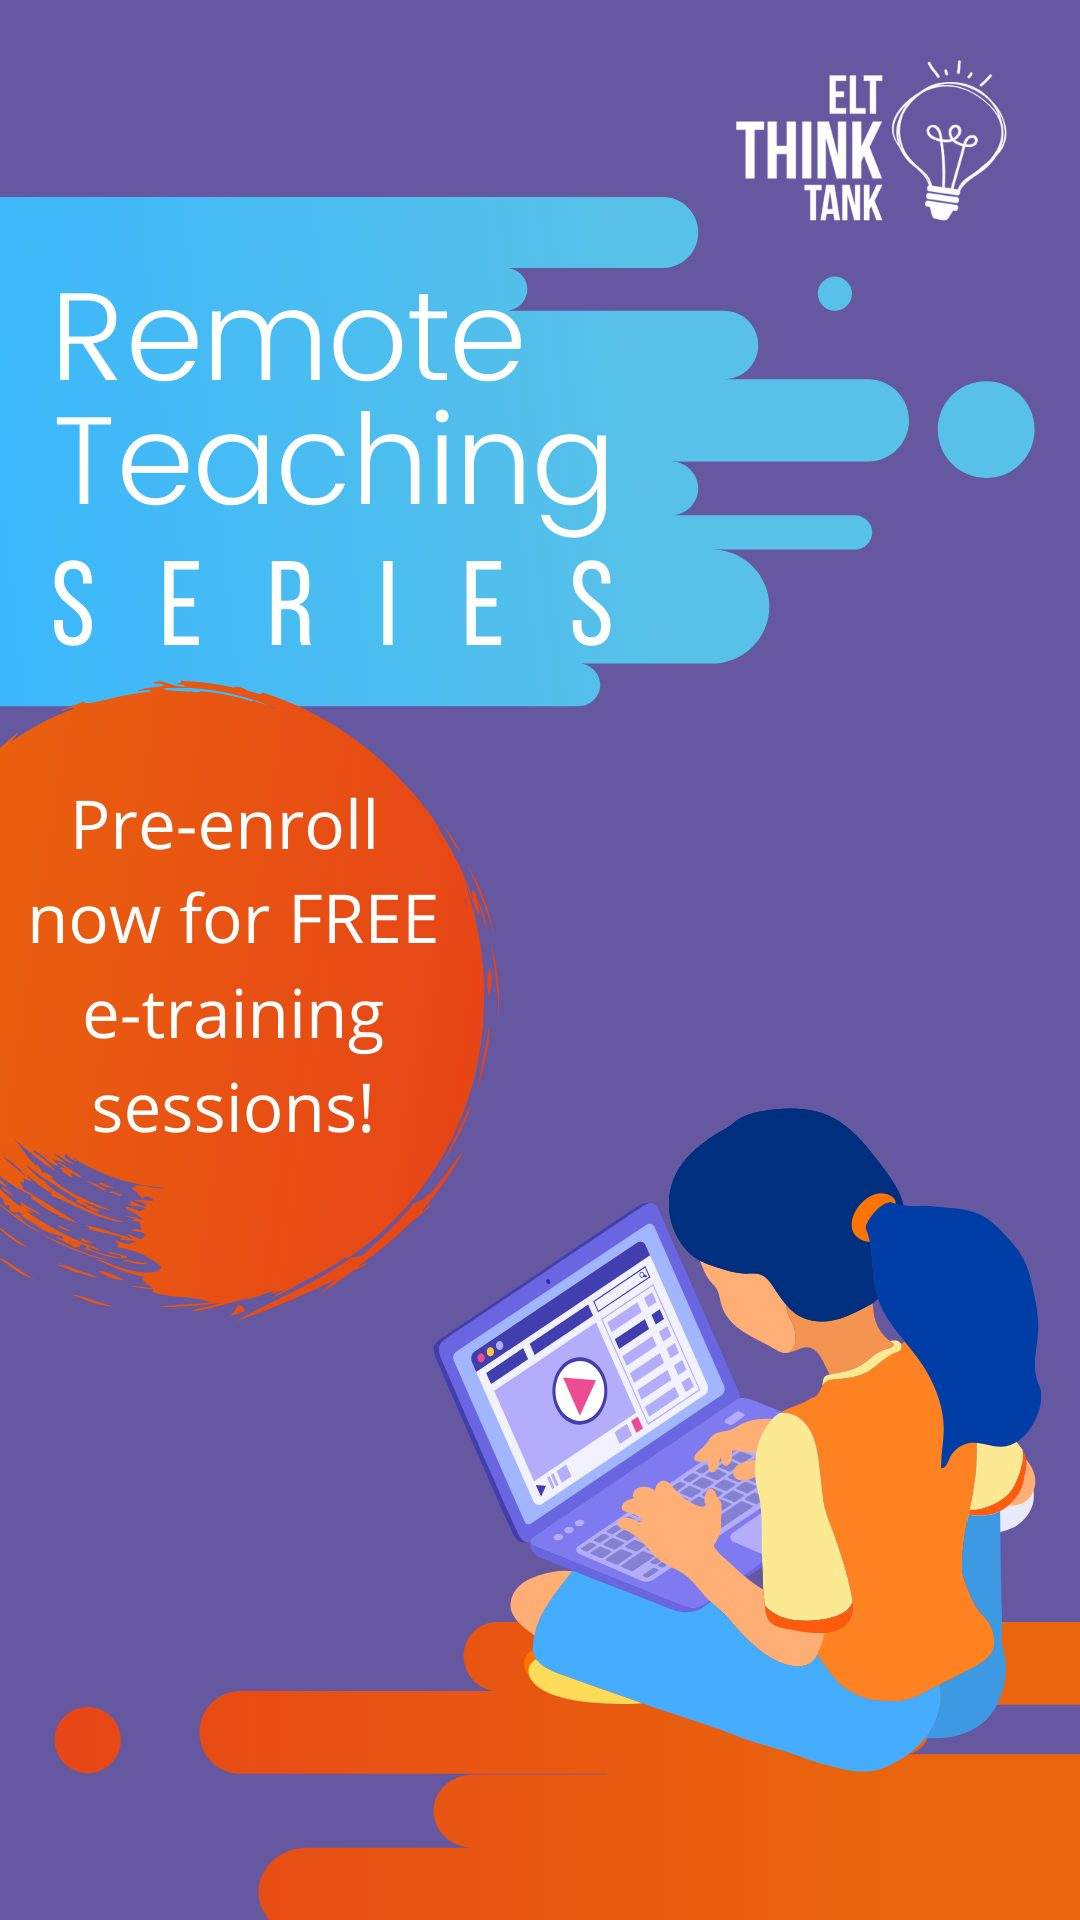 Remote Teaching Series